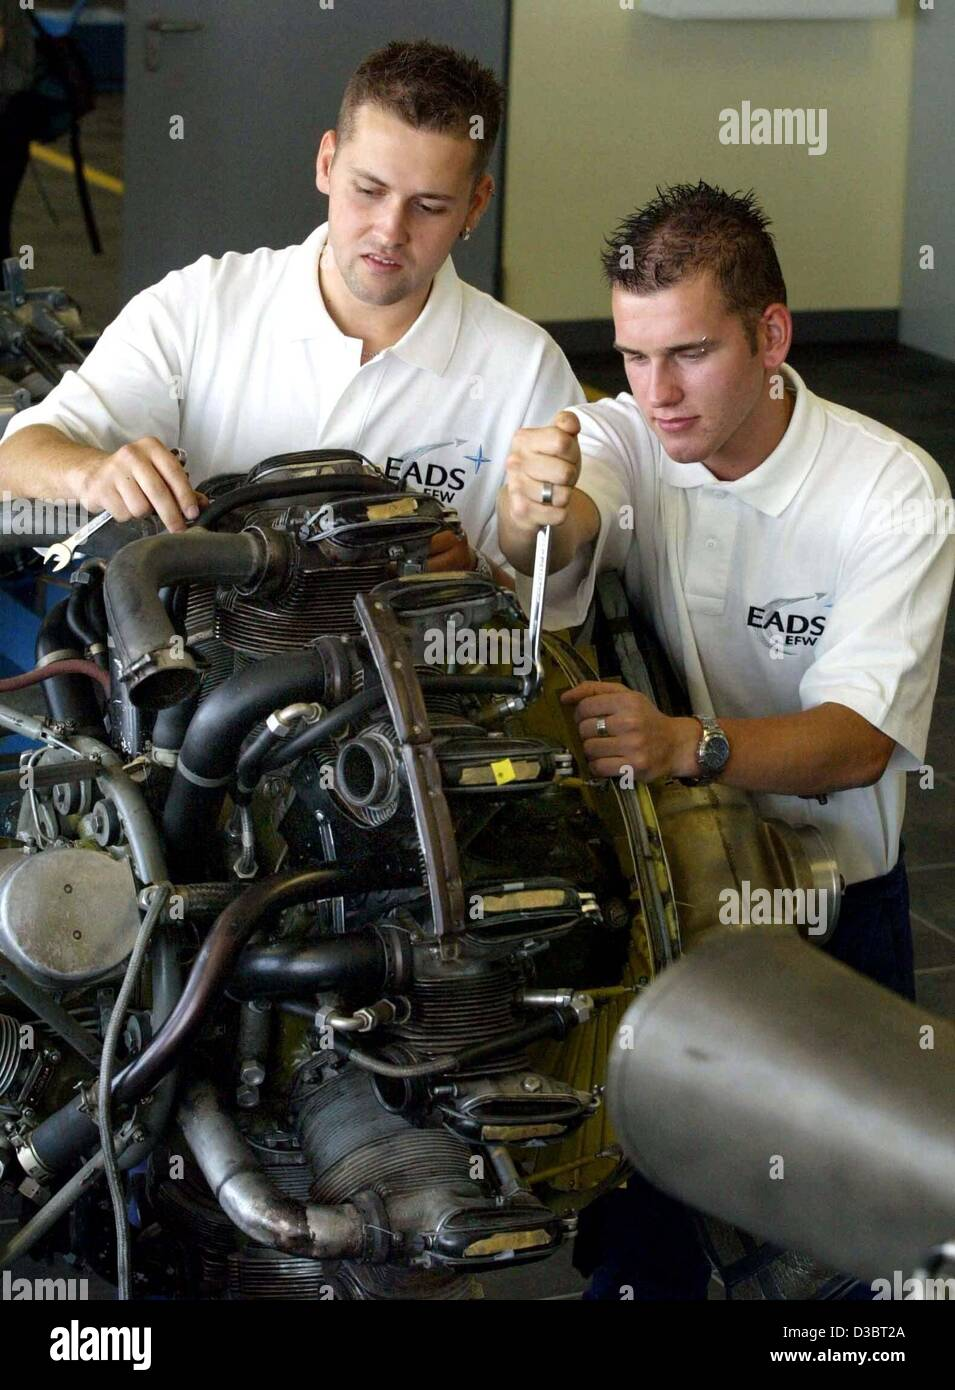 (dpa) - Two apprentices of the European Aeronautic Defence and Space Company/Elbe Flugzeugwerke (EADS/EFW), Martin - Stock Image